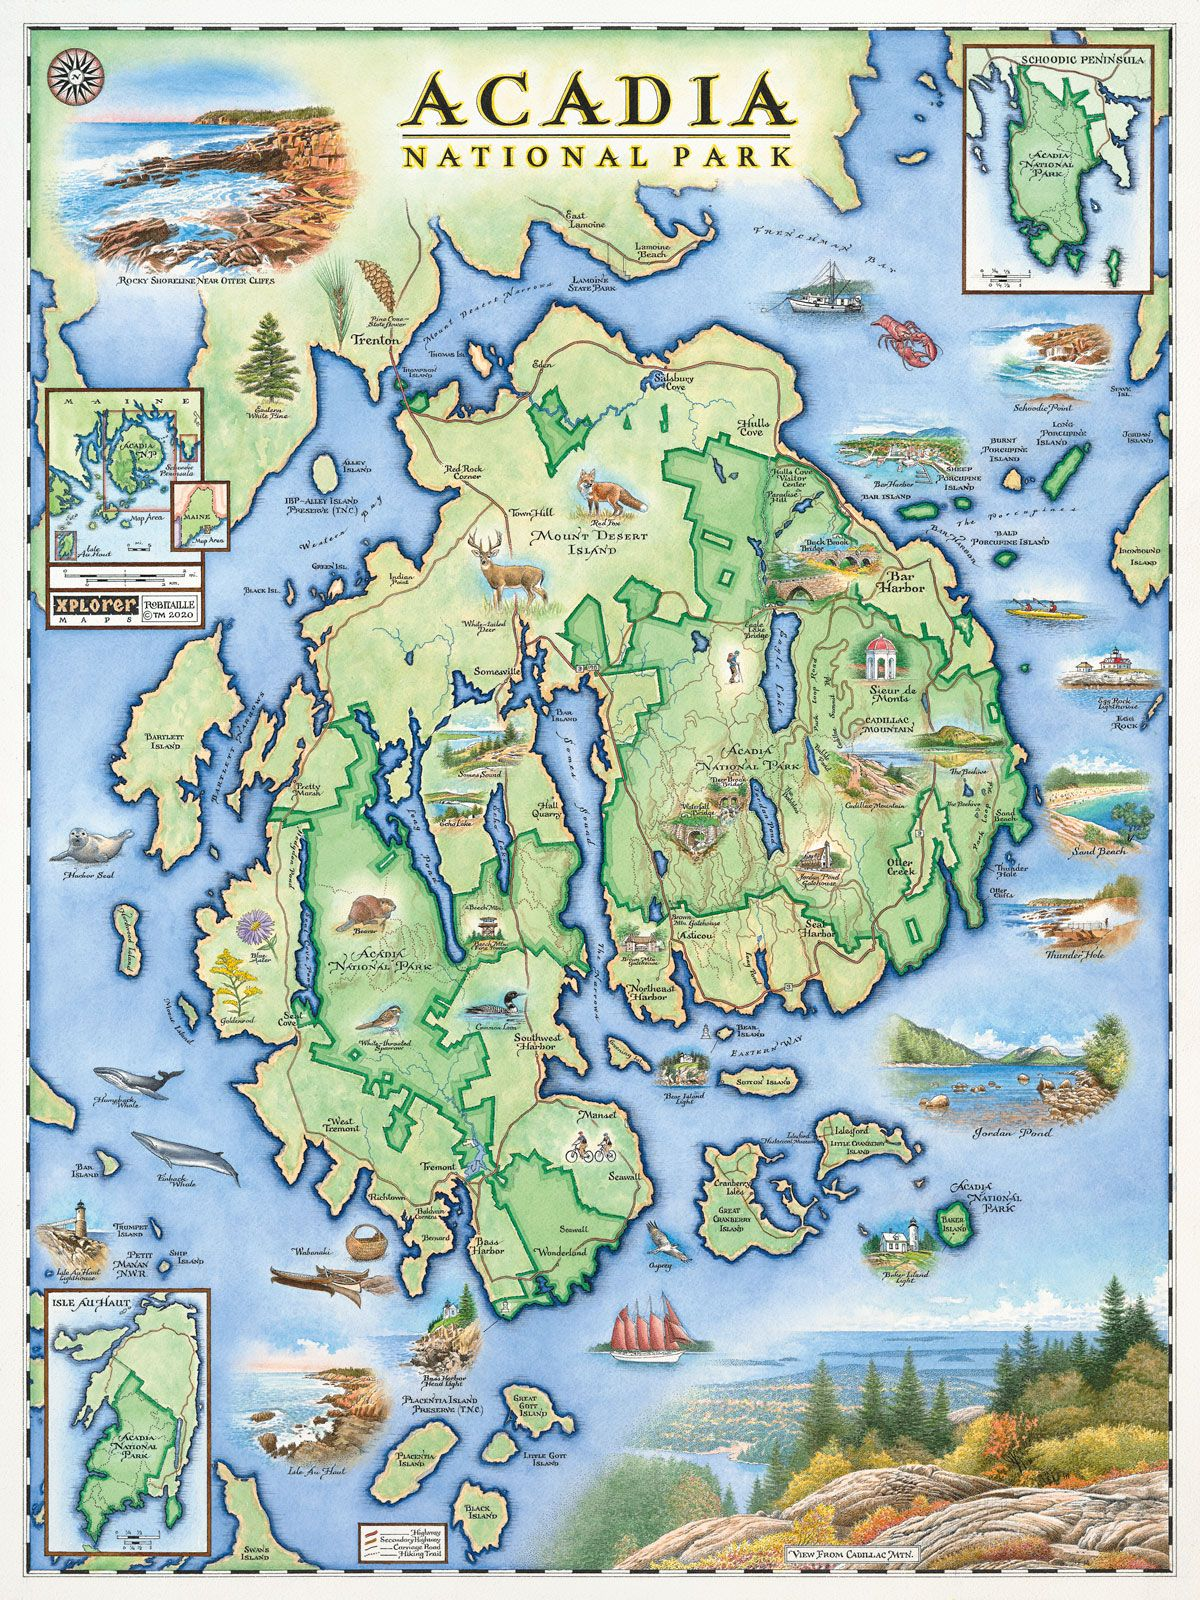 Acadia National Park Map In 2020